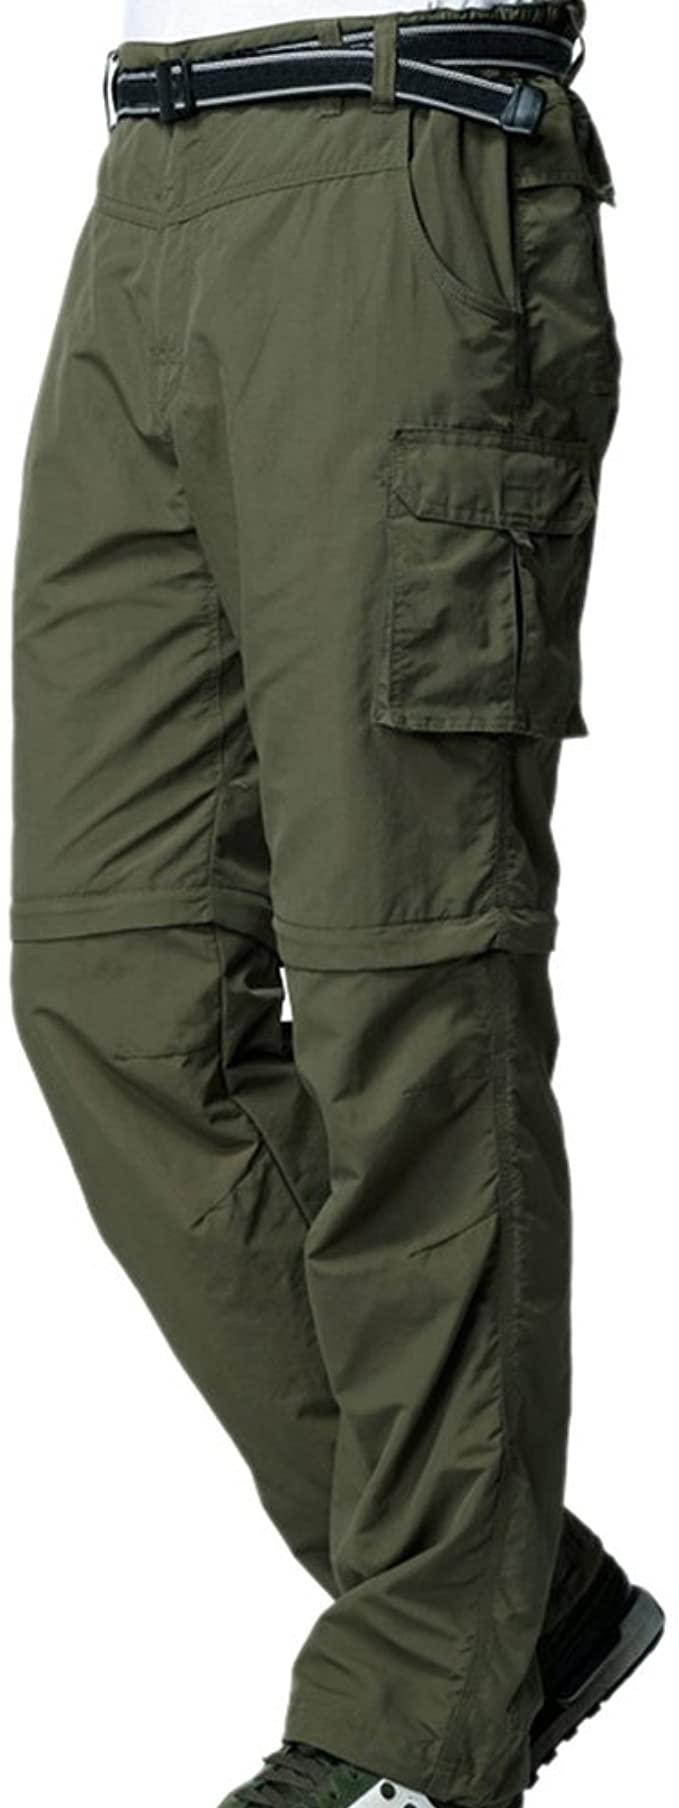 Jessie Kidden Mens Cargo Trouser Work Finishing Pants Anytime Outdoor Quick Dry Active Windproof Convertible Hiking Finishing #225